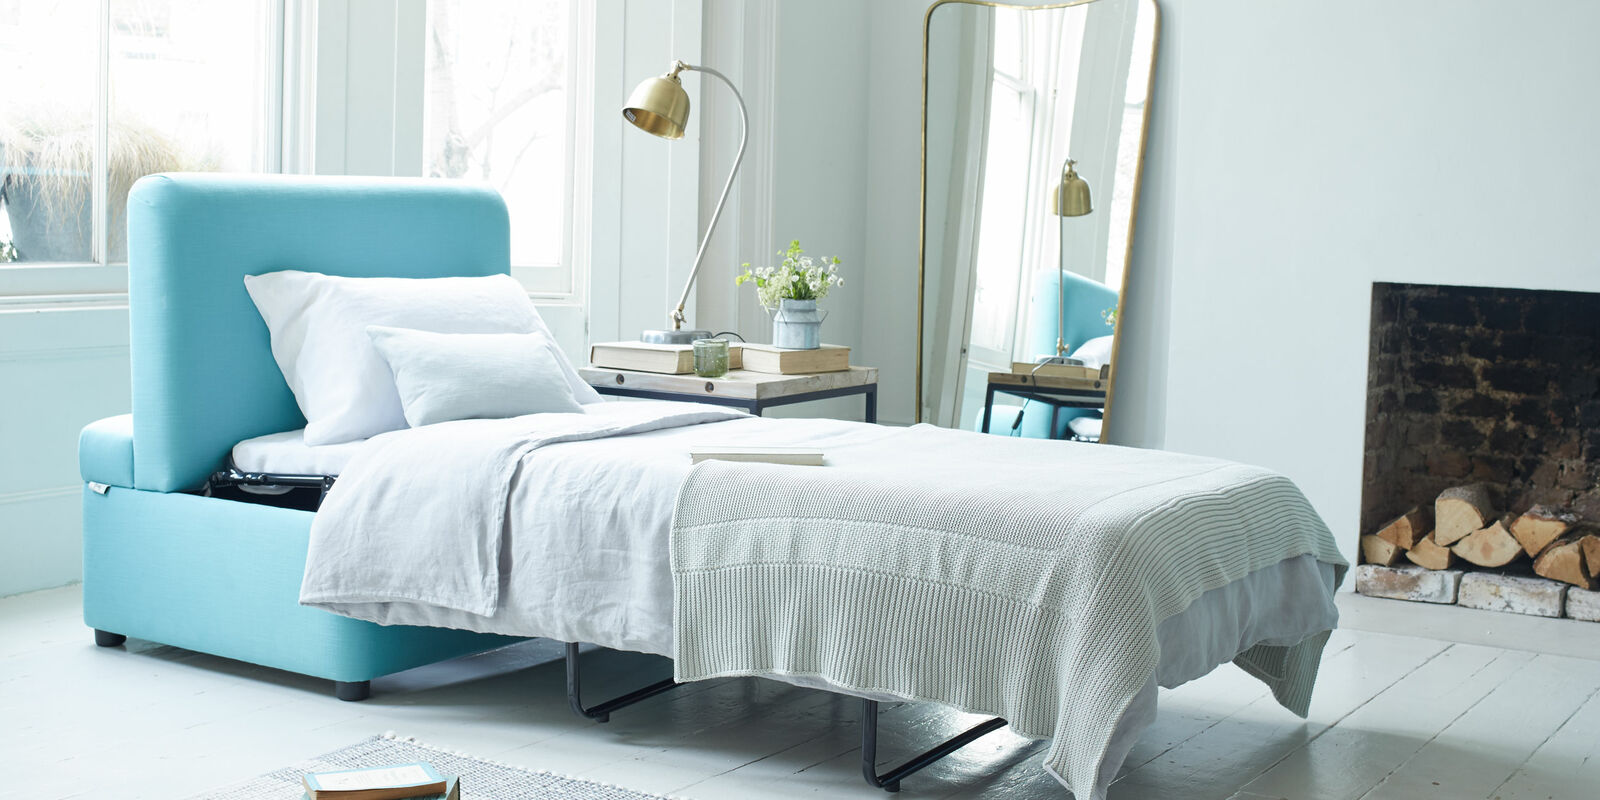 Sofa beds and daybeds with hidden mattresses